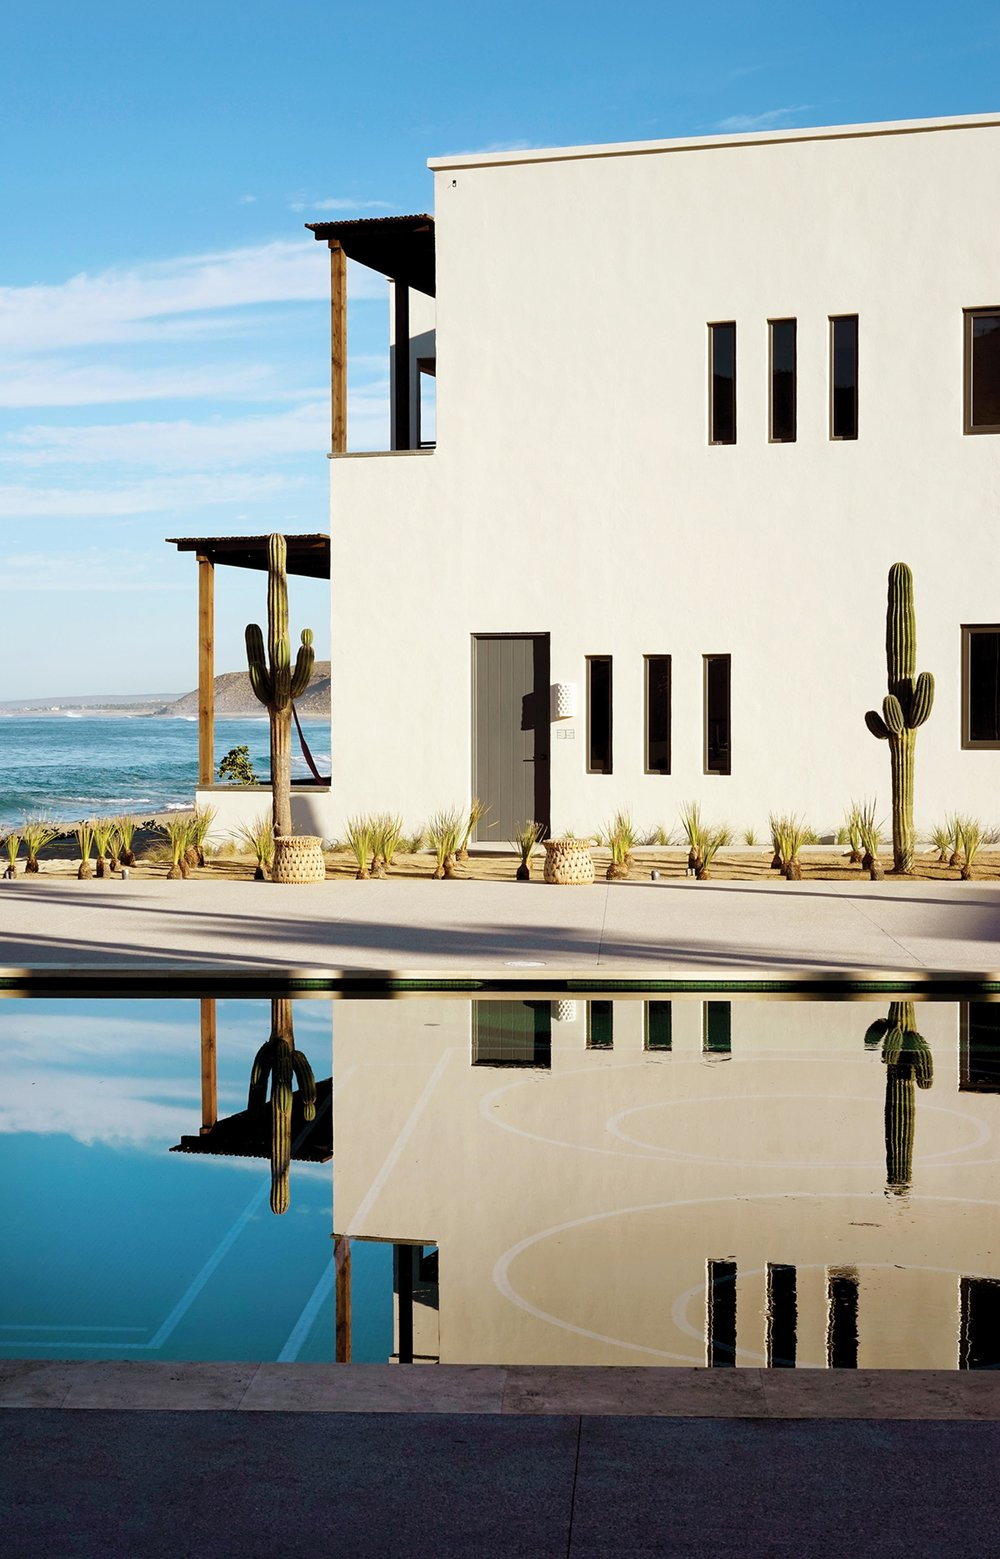 THE LIFE AQUATIC | The pool area of Hotel San Cristóbal, which overlooks Playa Punta Lobos. Photo: Pia Riverola for WSJ. Magazine